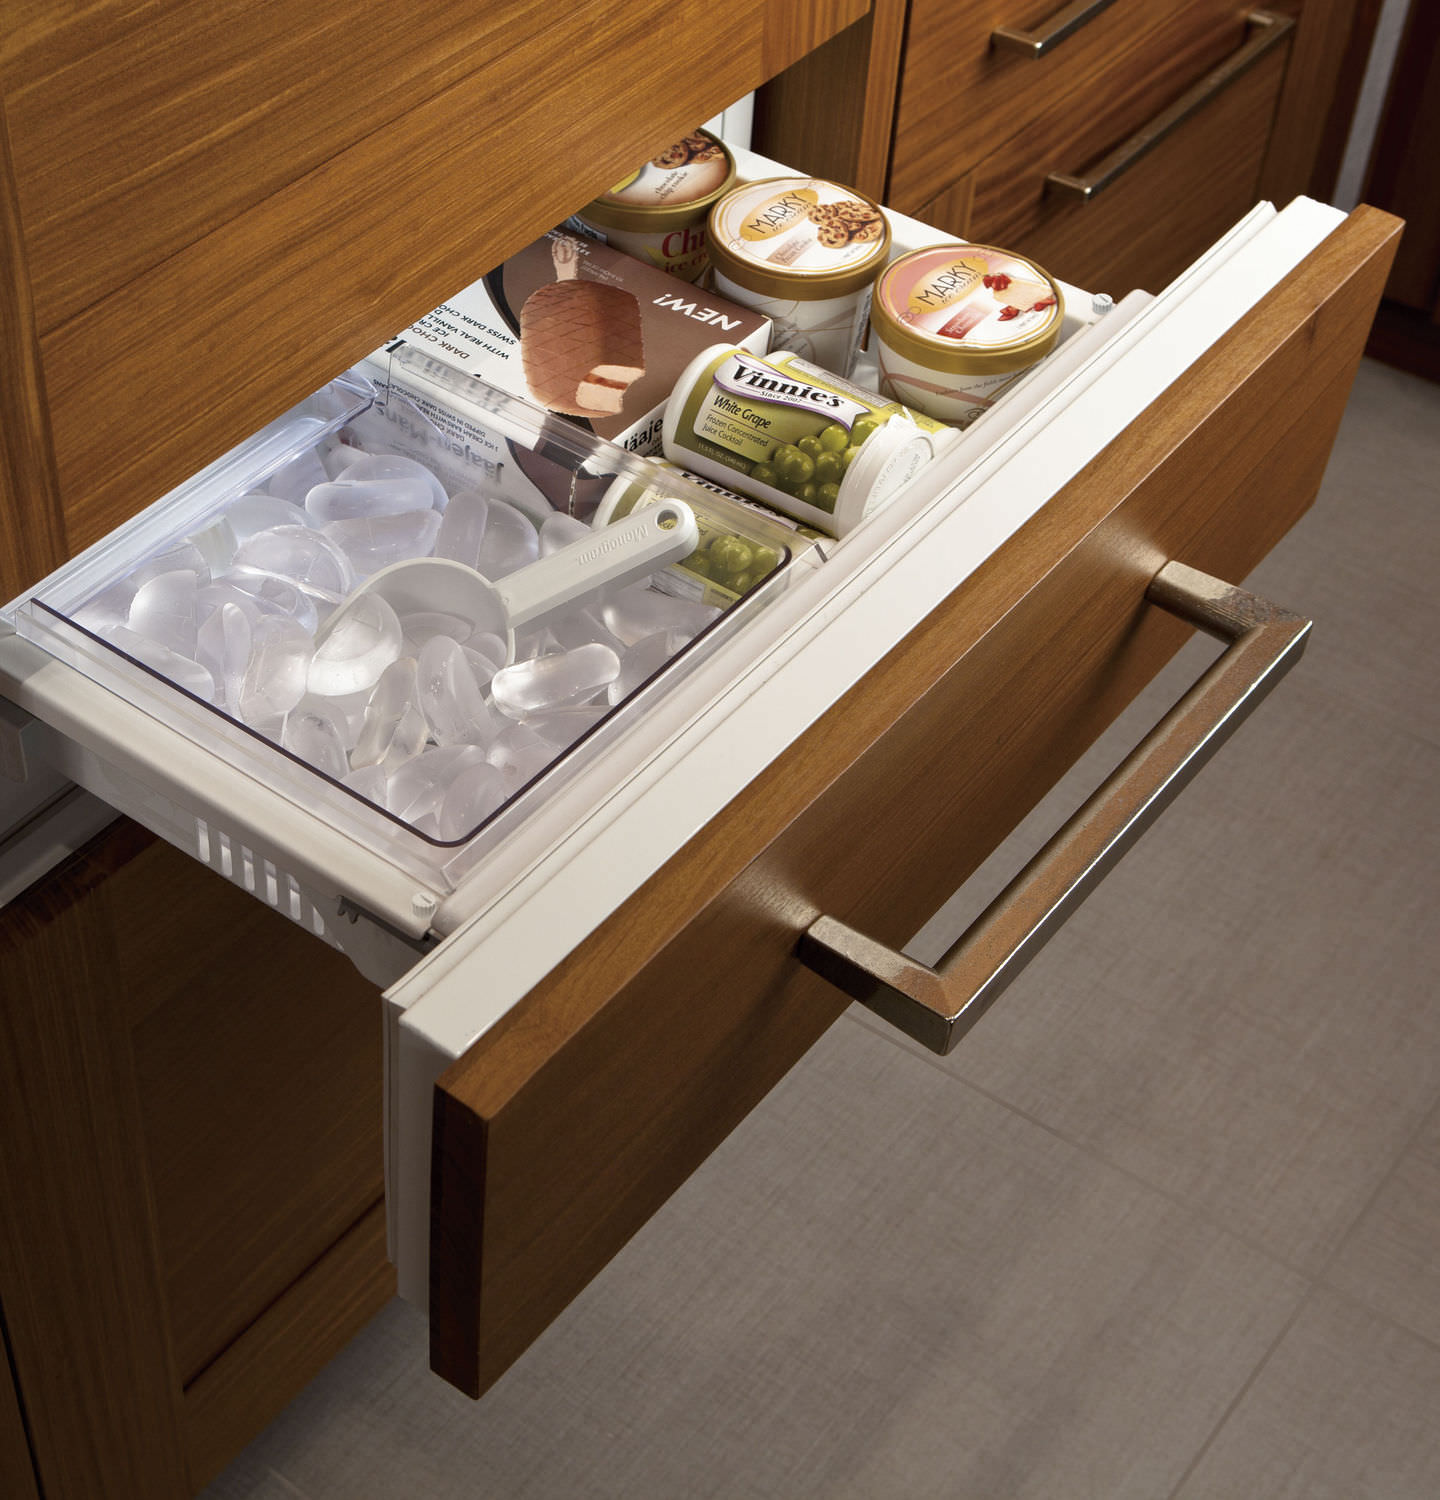 corner rooms a norcool refrigerated welcome leading drawers the world supplier fridges to cold of kj